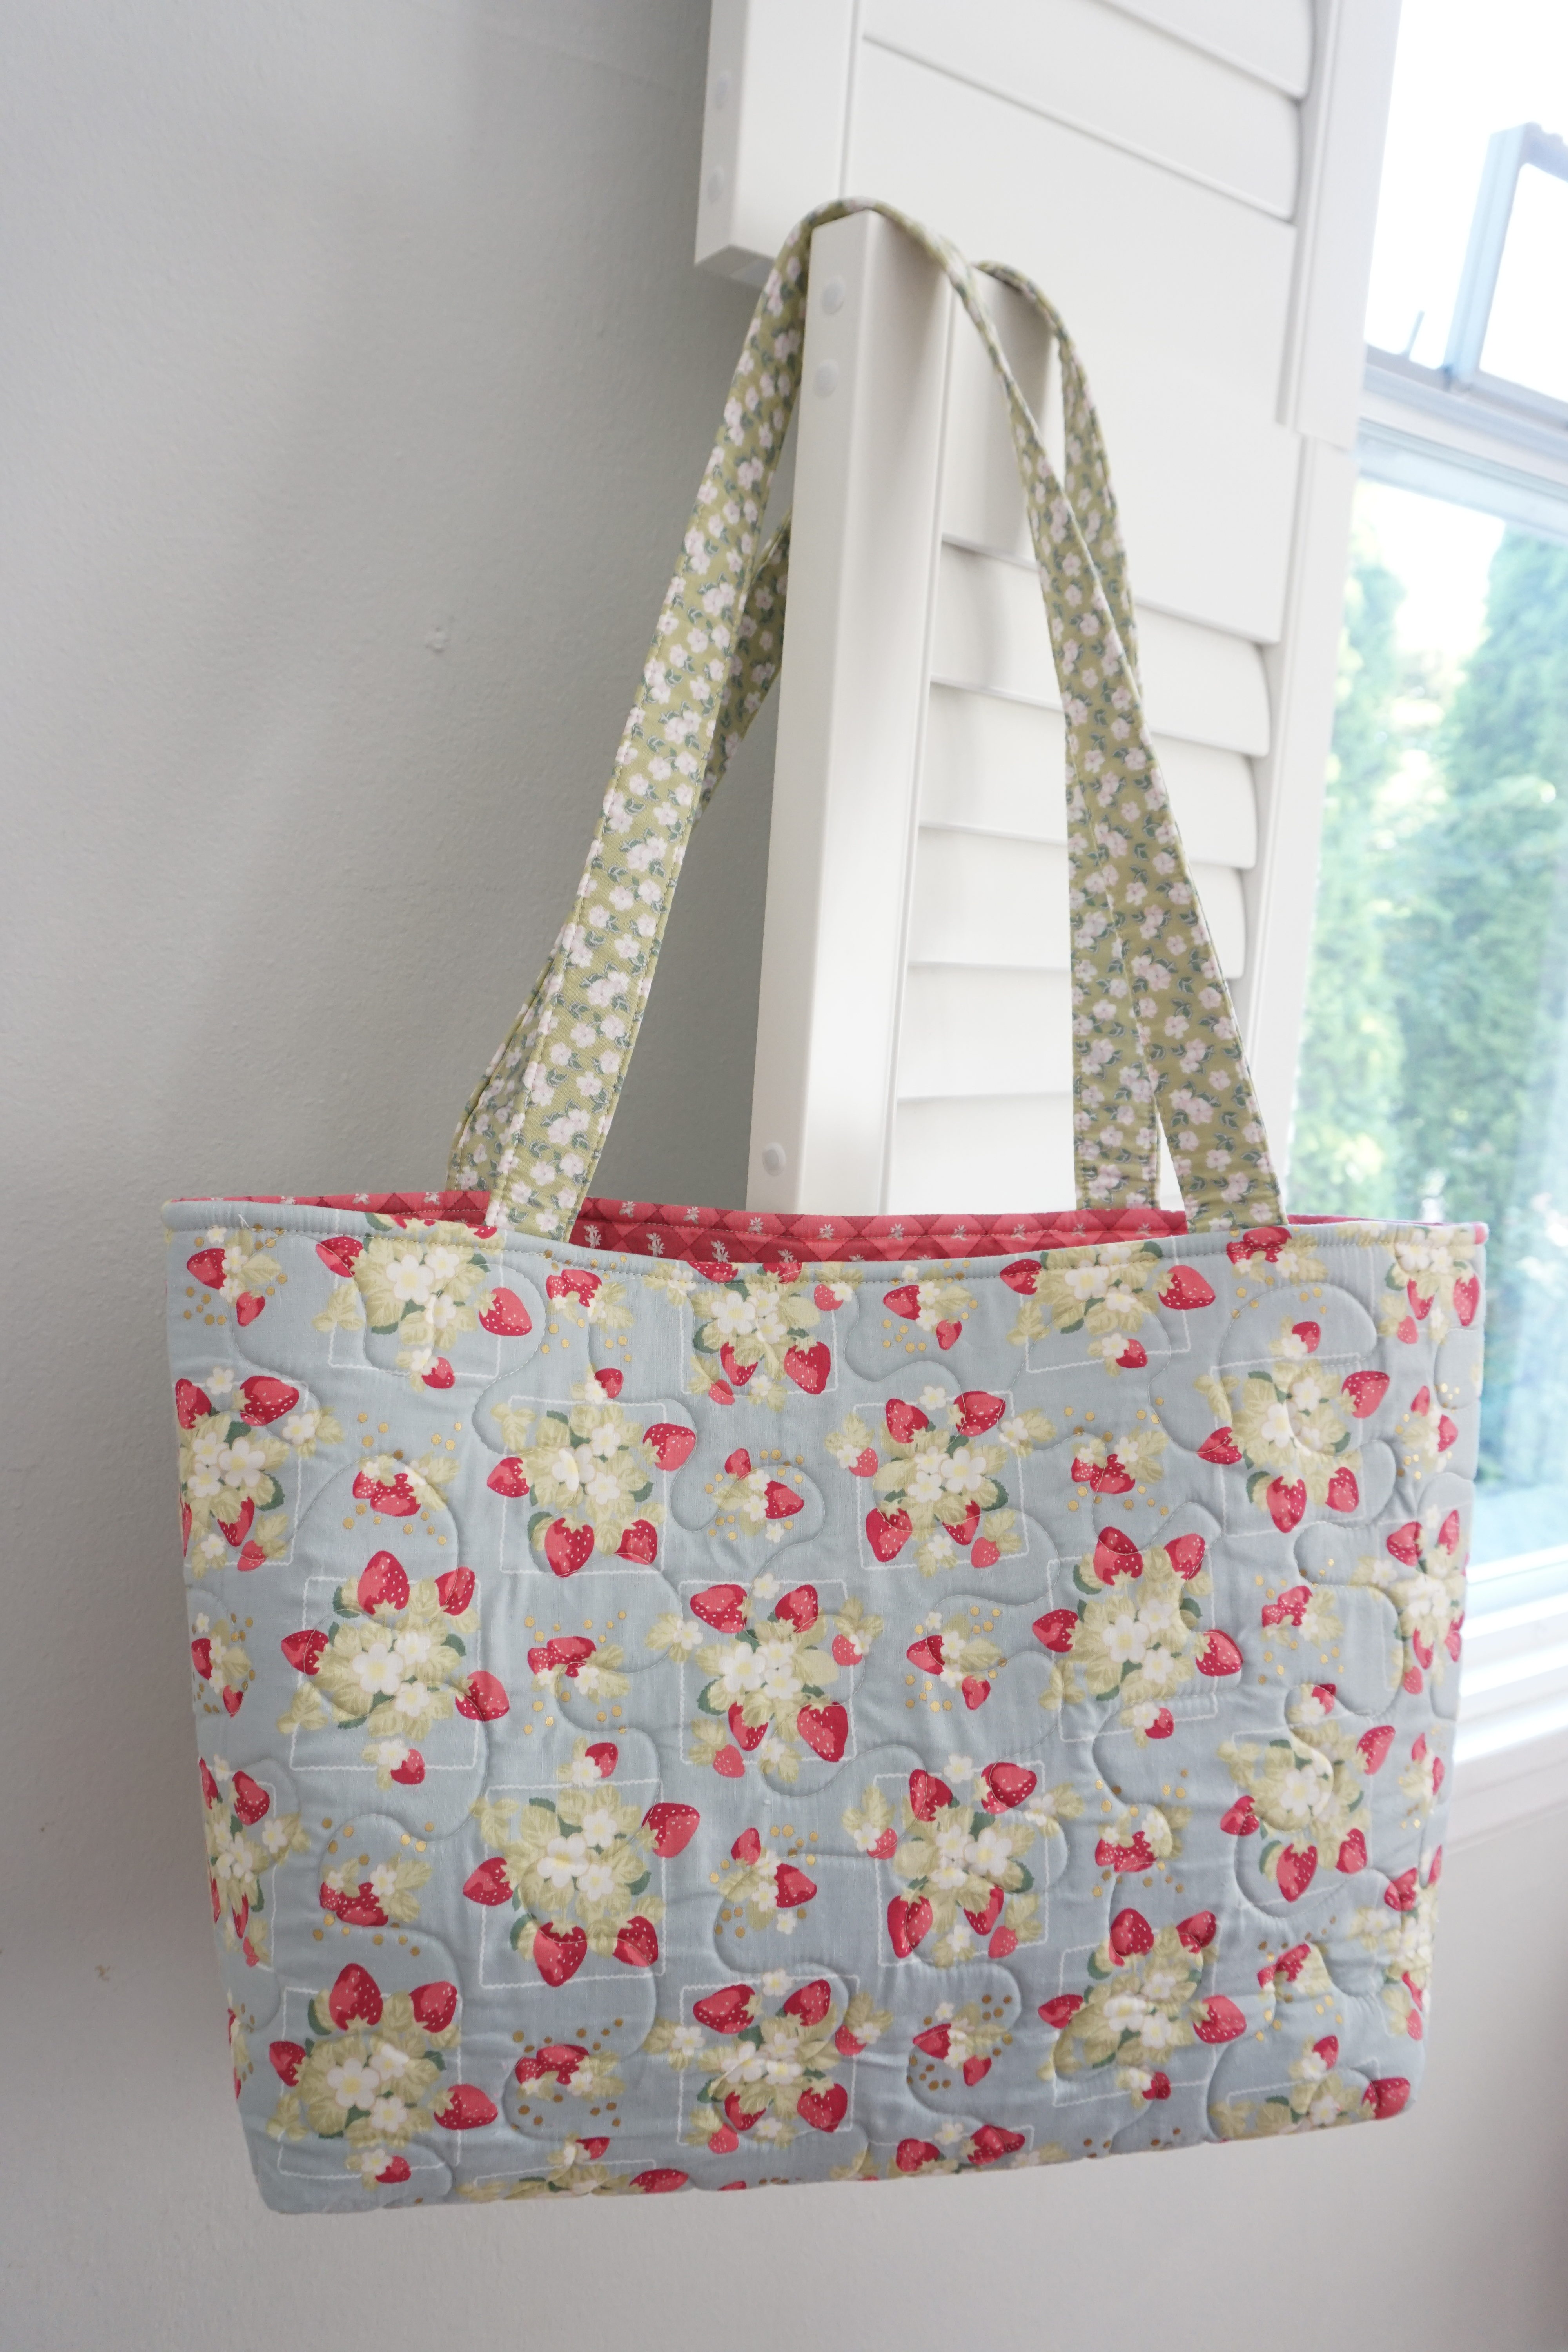 If You Want To Make A Quicker Version Of This Bag Just Ditch The Patchwork And Use Full Panel Fabric Instead As Shown Below